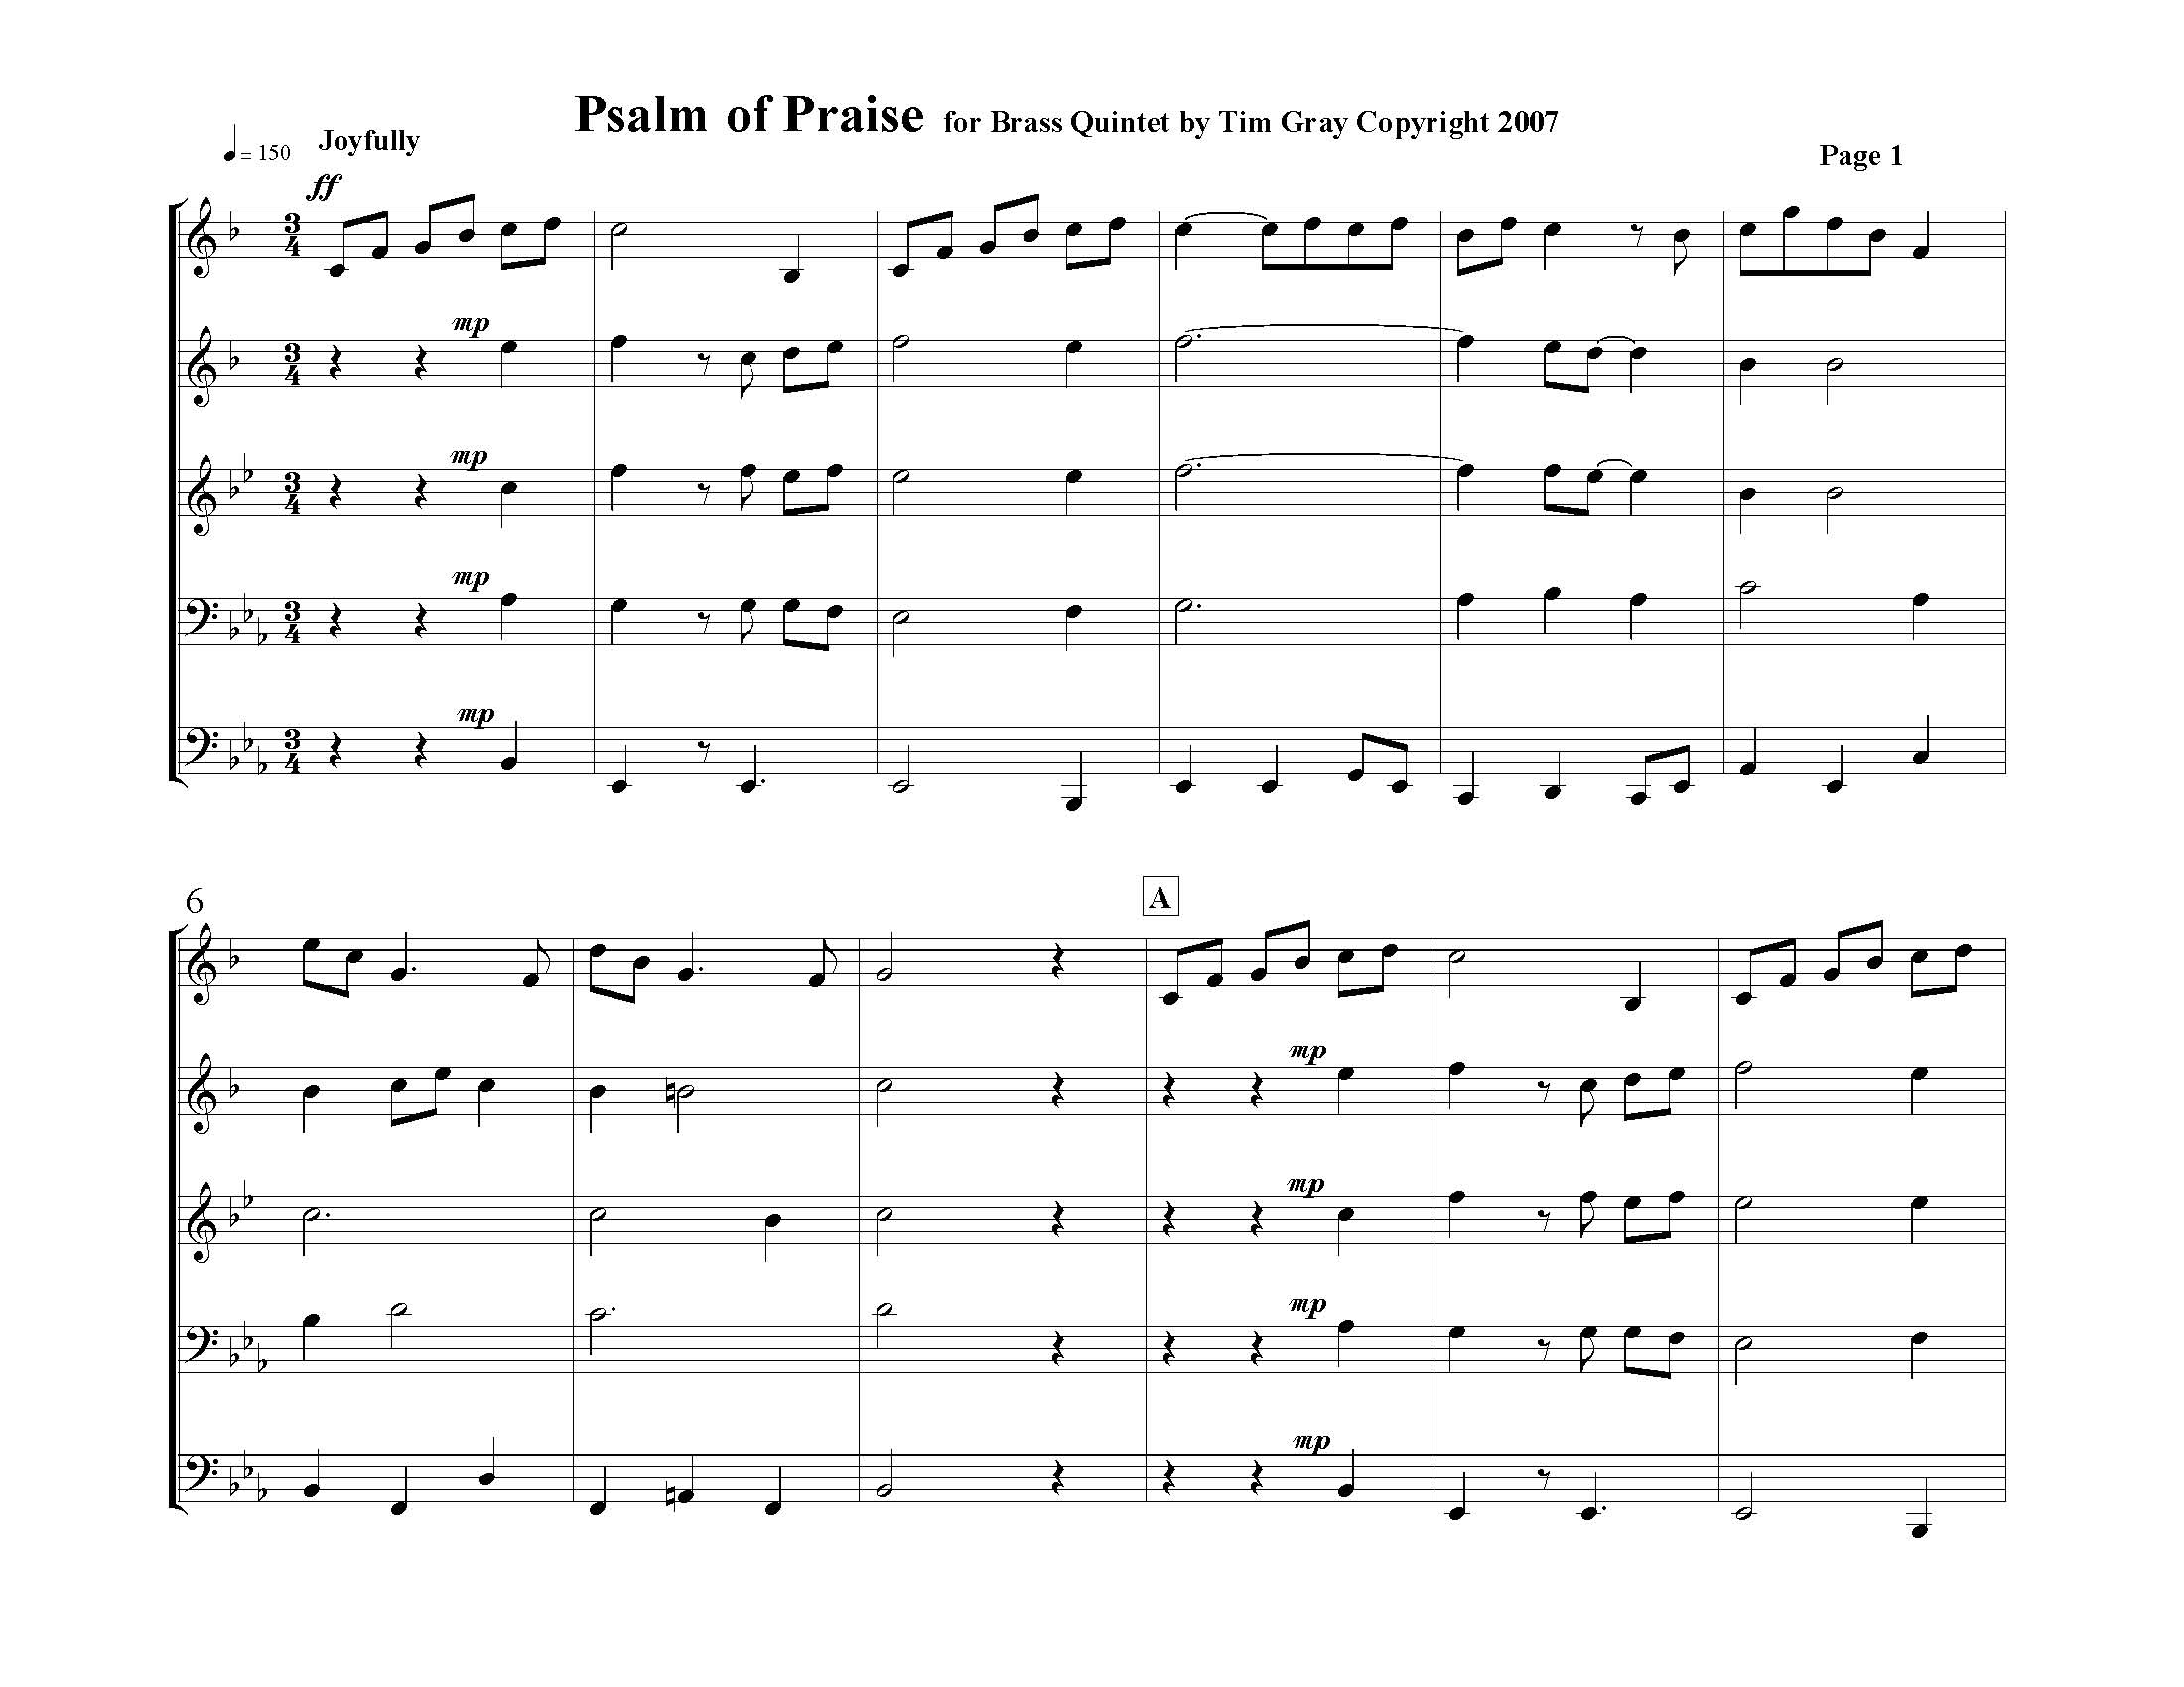 Psalm of Praise Brass Quintet sample page 1 on HonoringGodMusic.com